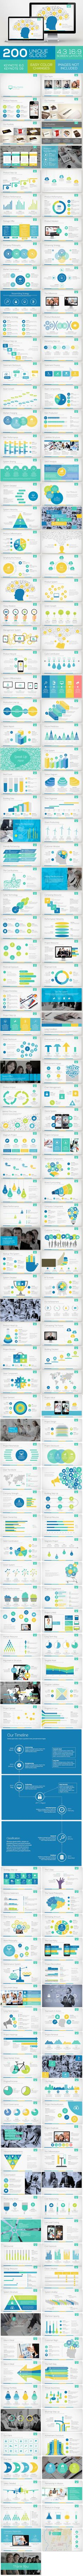 Akuntansi Keynote Template #keynotetemplate #keynote #presentation Download: http://graphicriver.net/item/akuntansi-keynote/8083414?ref=ksioks